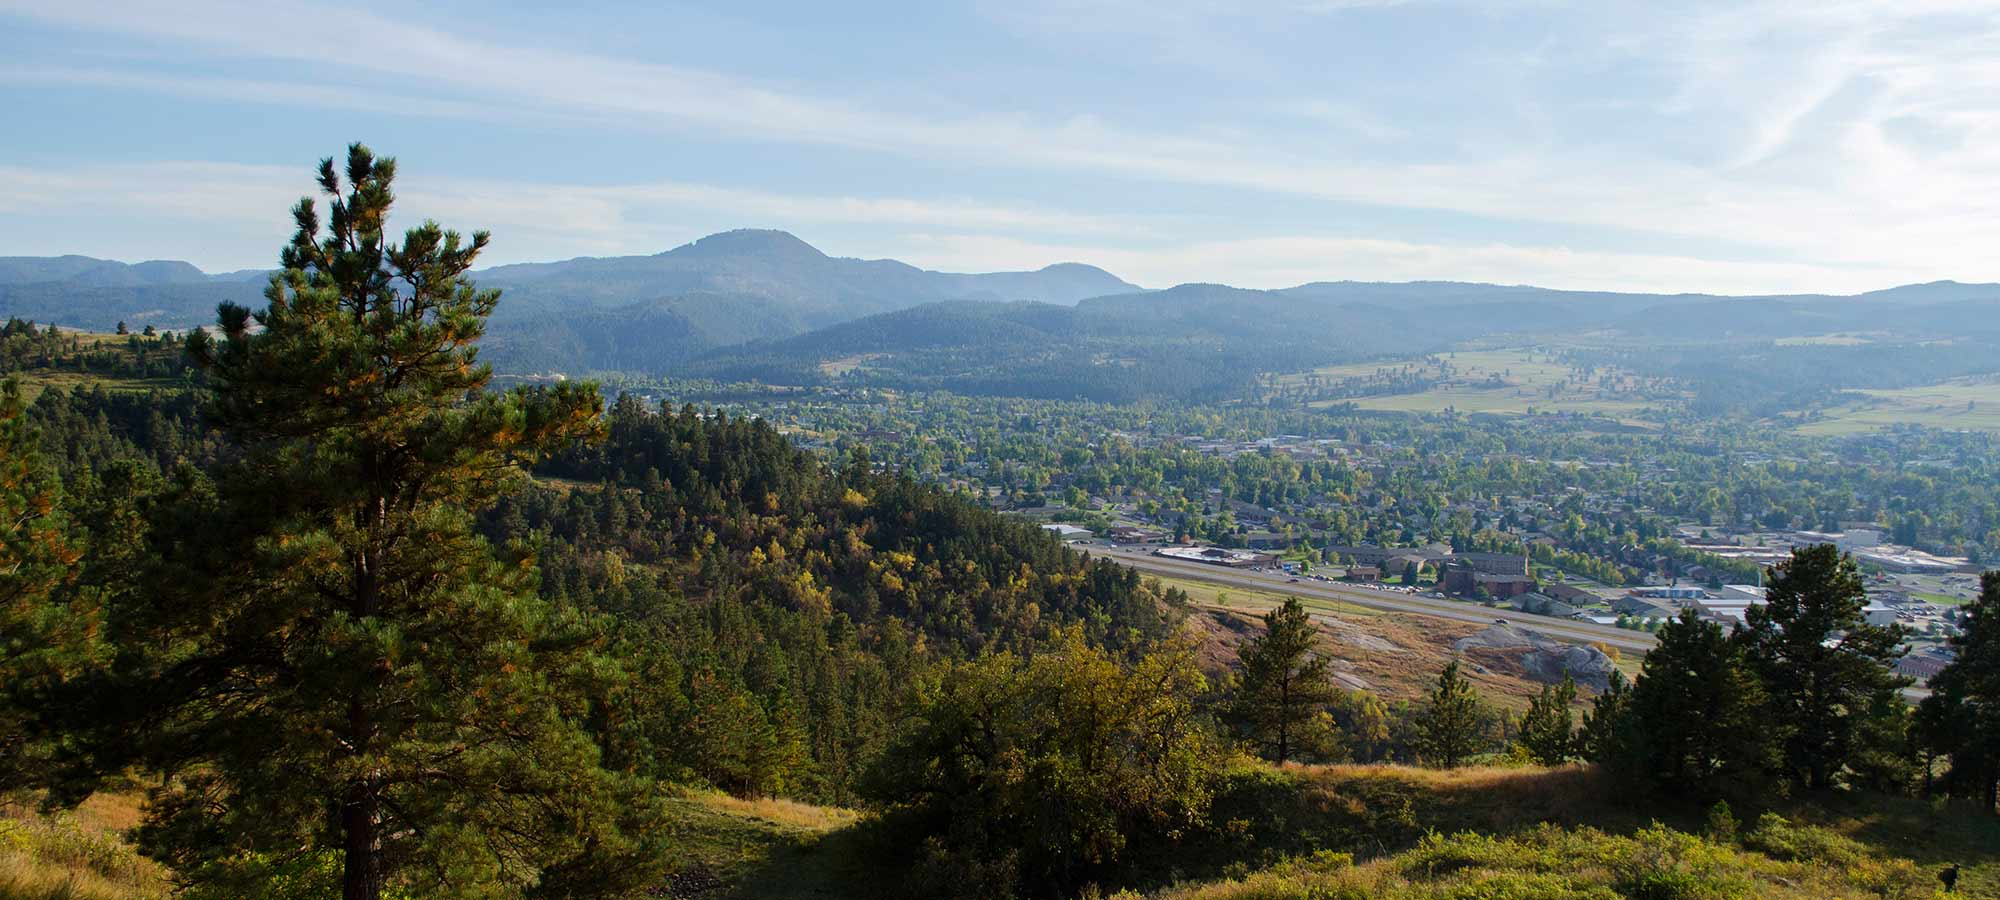 Experience the Black Hills of South Dakota at Black Hills State University in Spearfish.